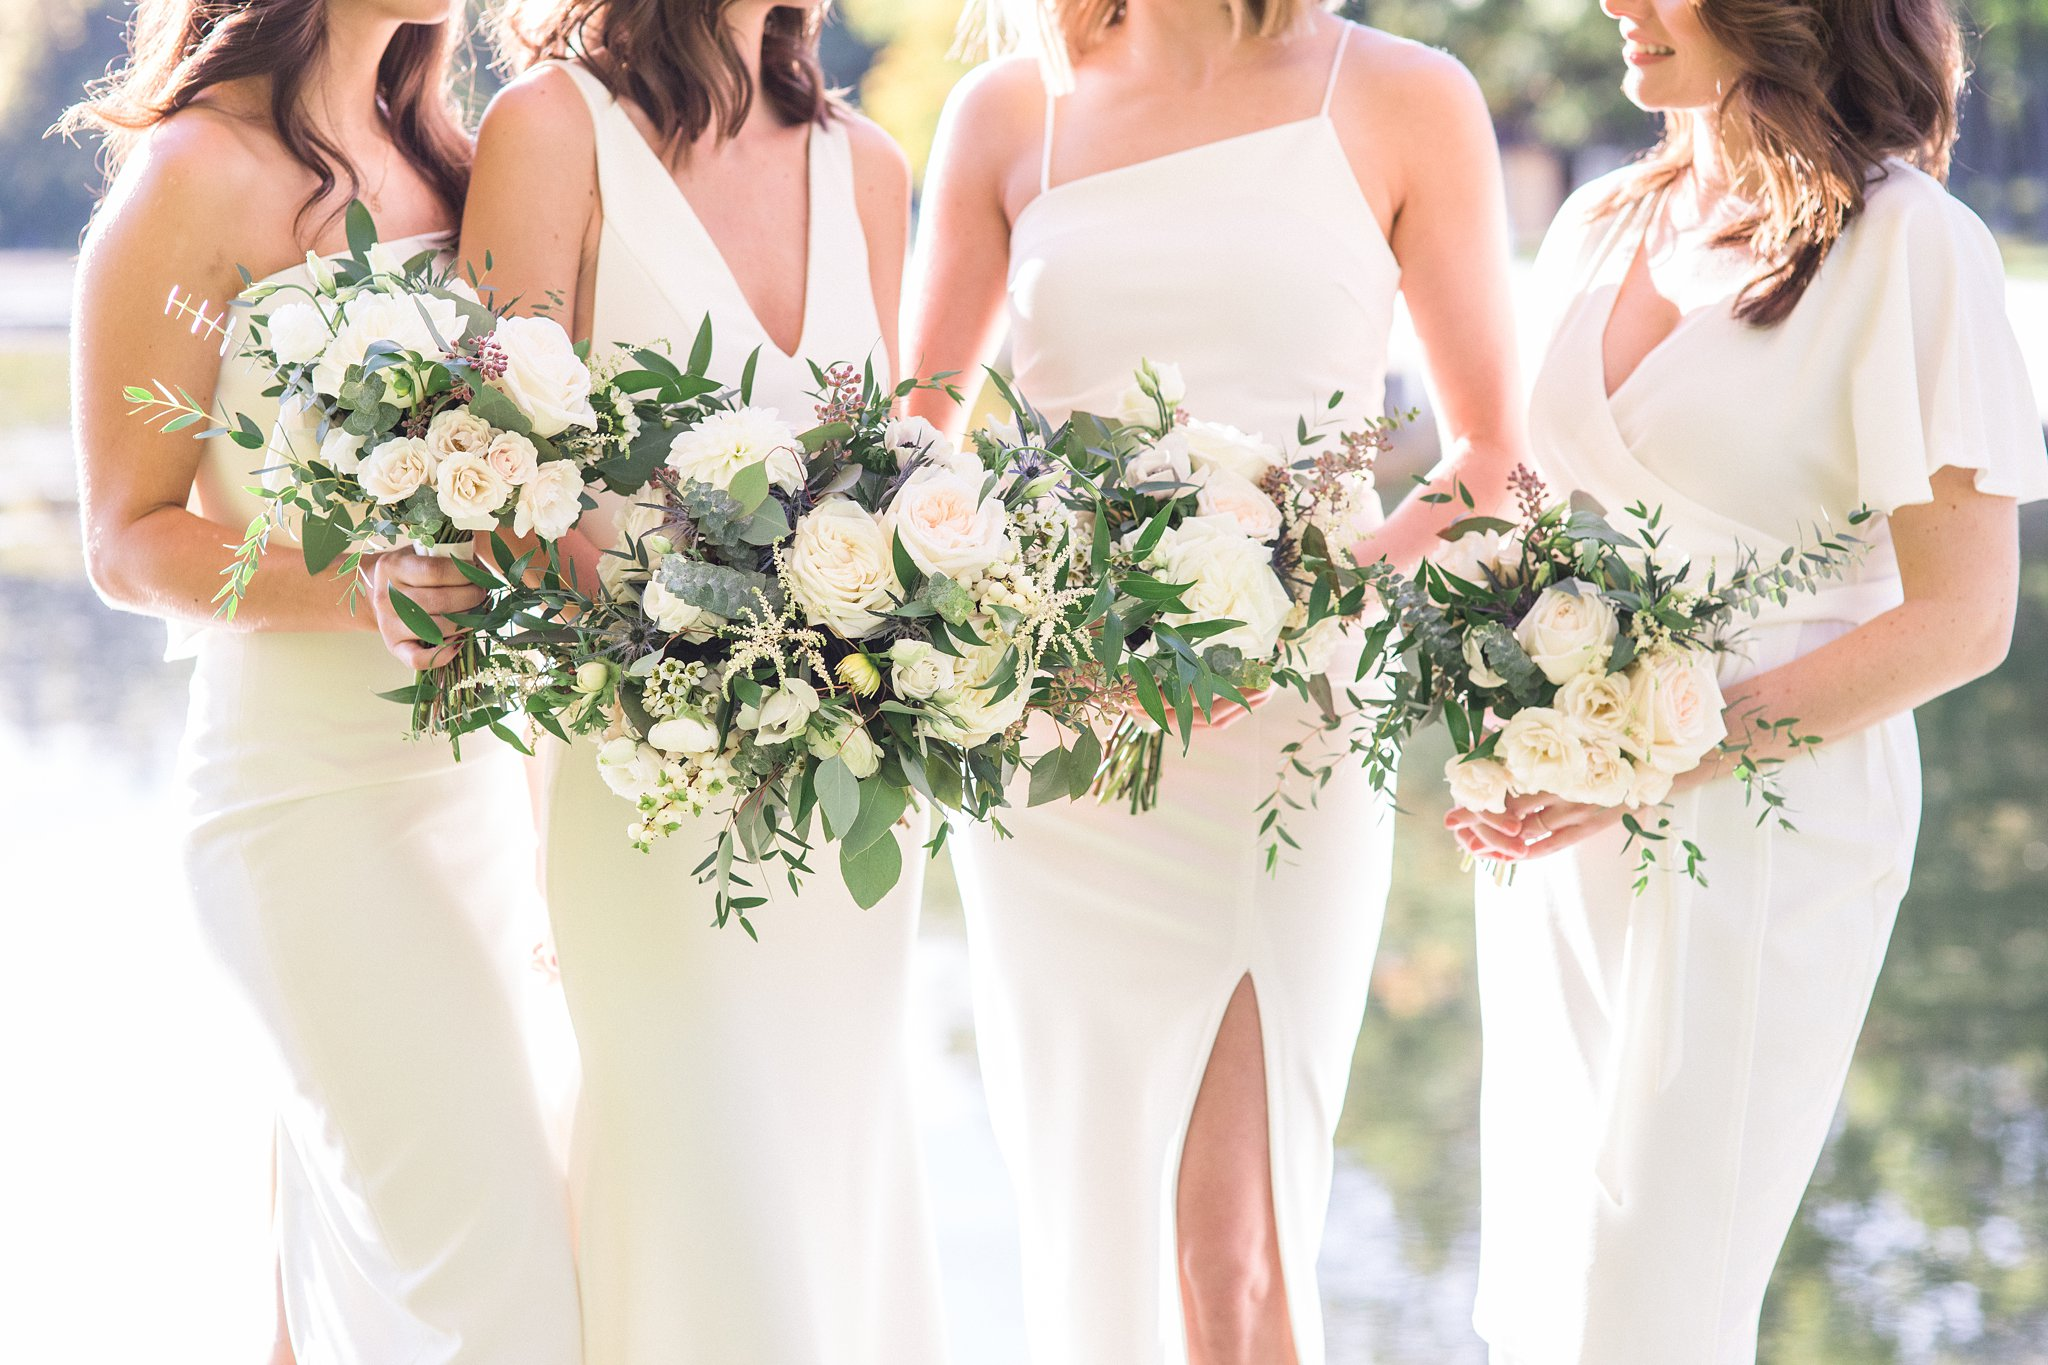 Bridesmaids in white dresses, Opinicon Wedding Photos by Amy Pinder Photography